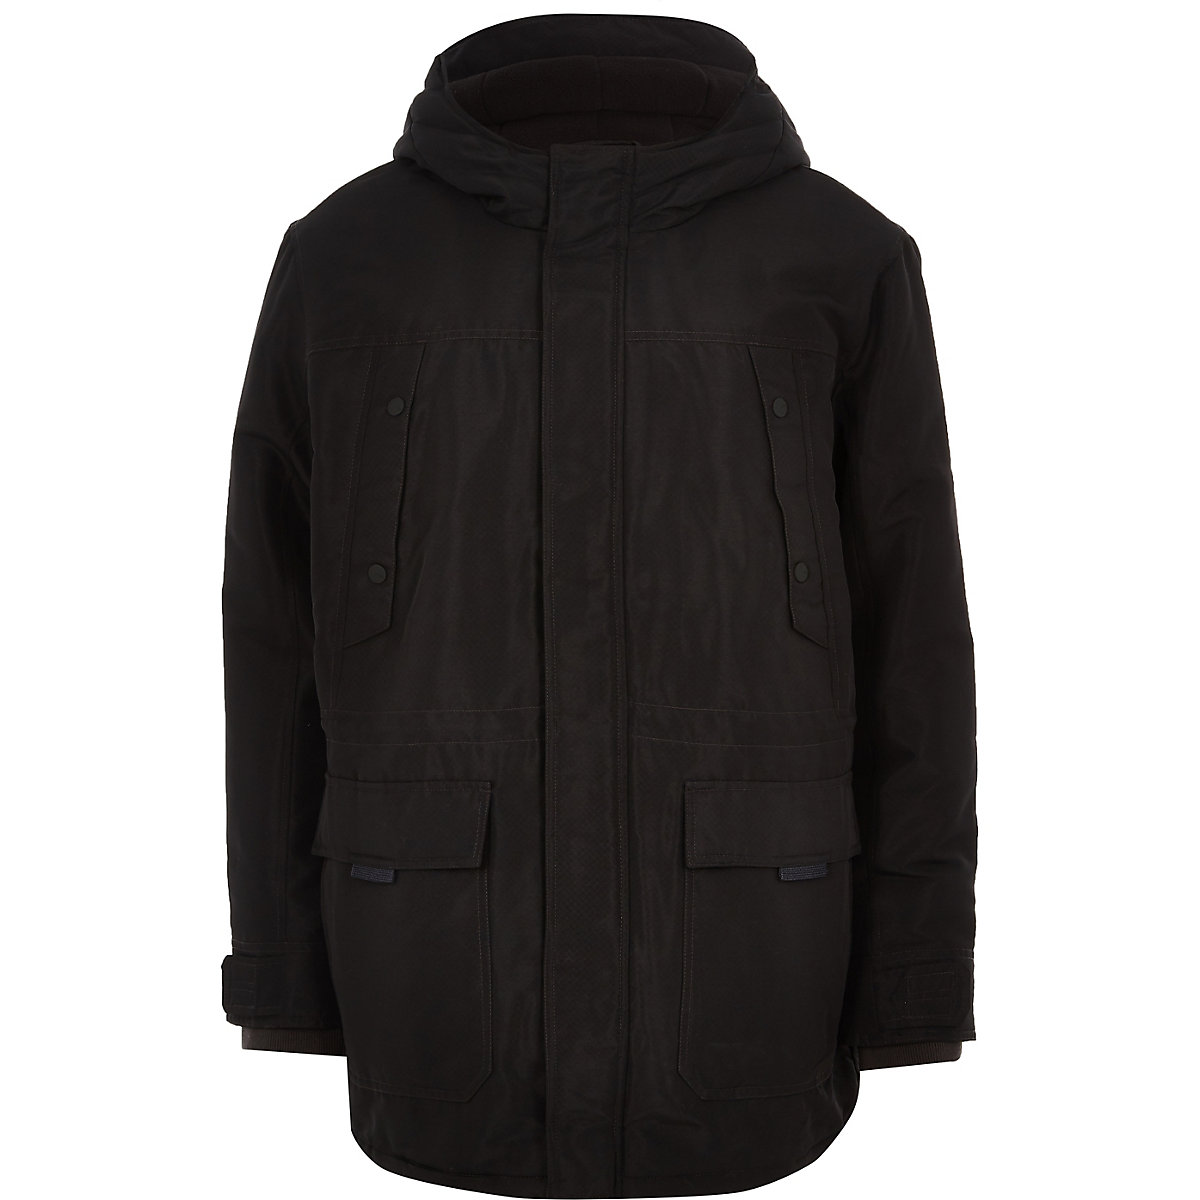 Only & Sons Big and Tall black padded parka